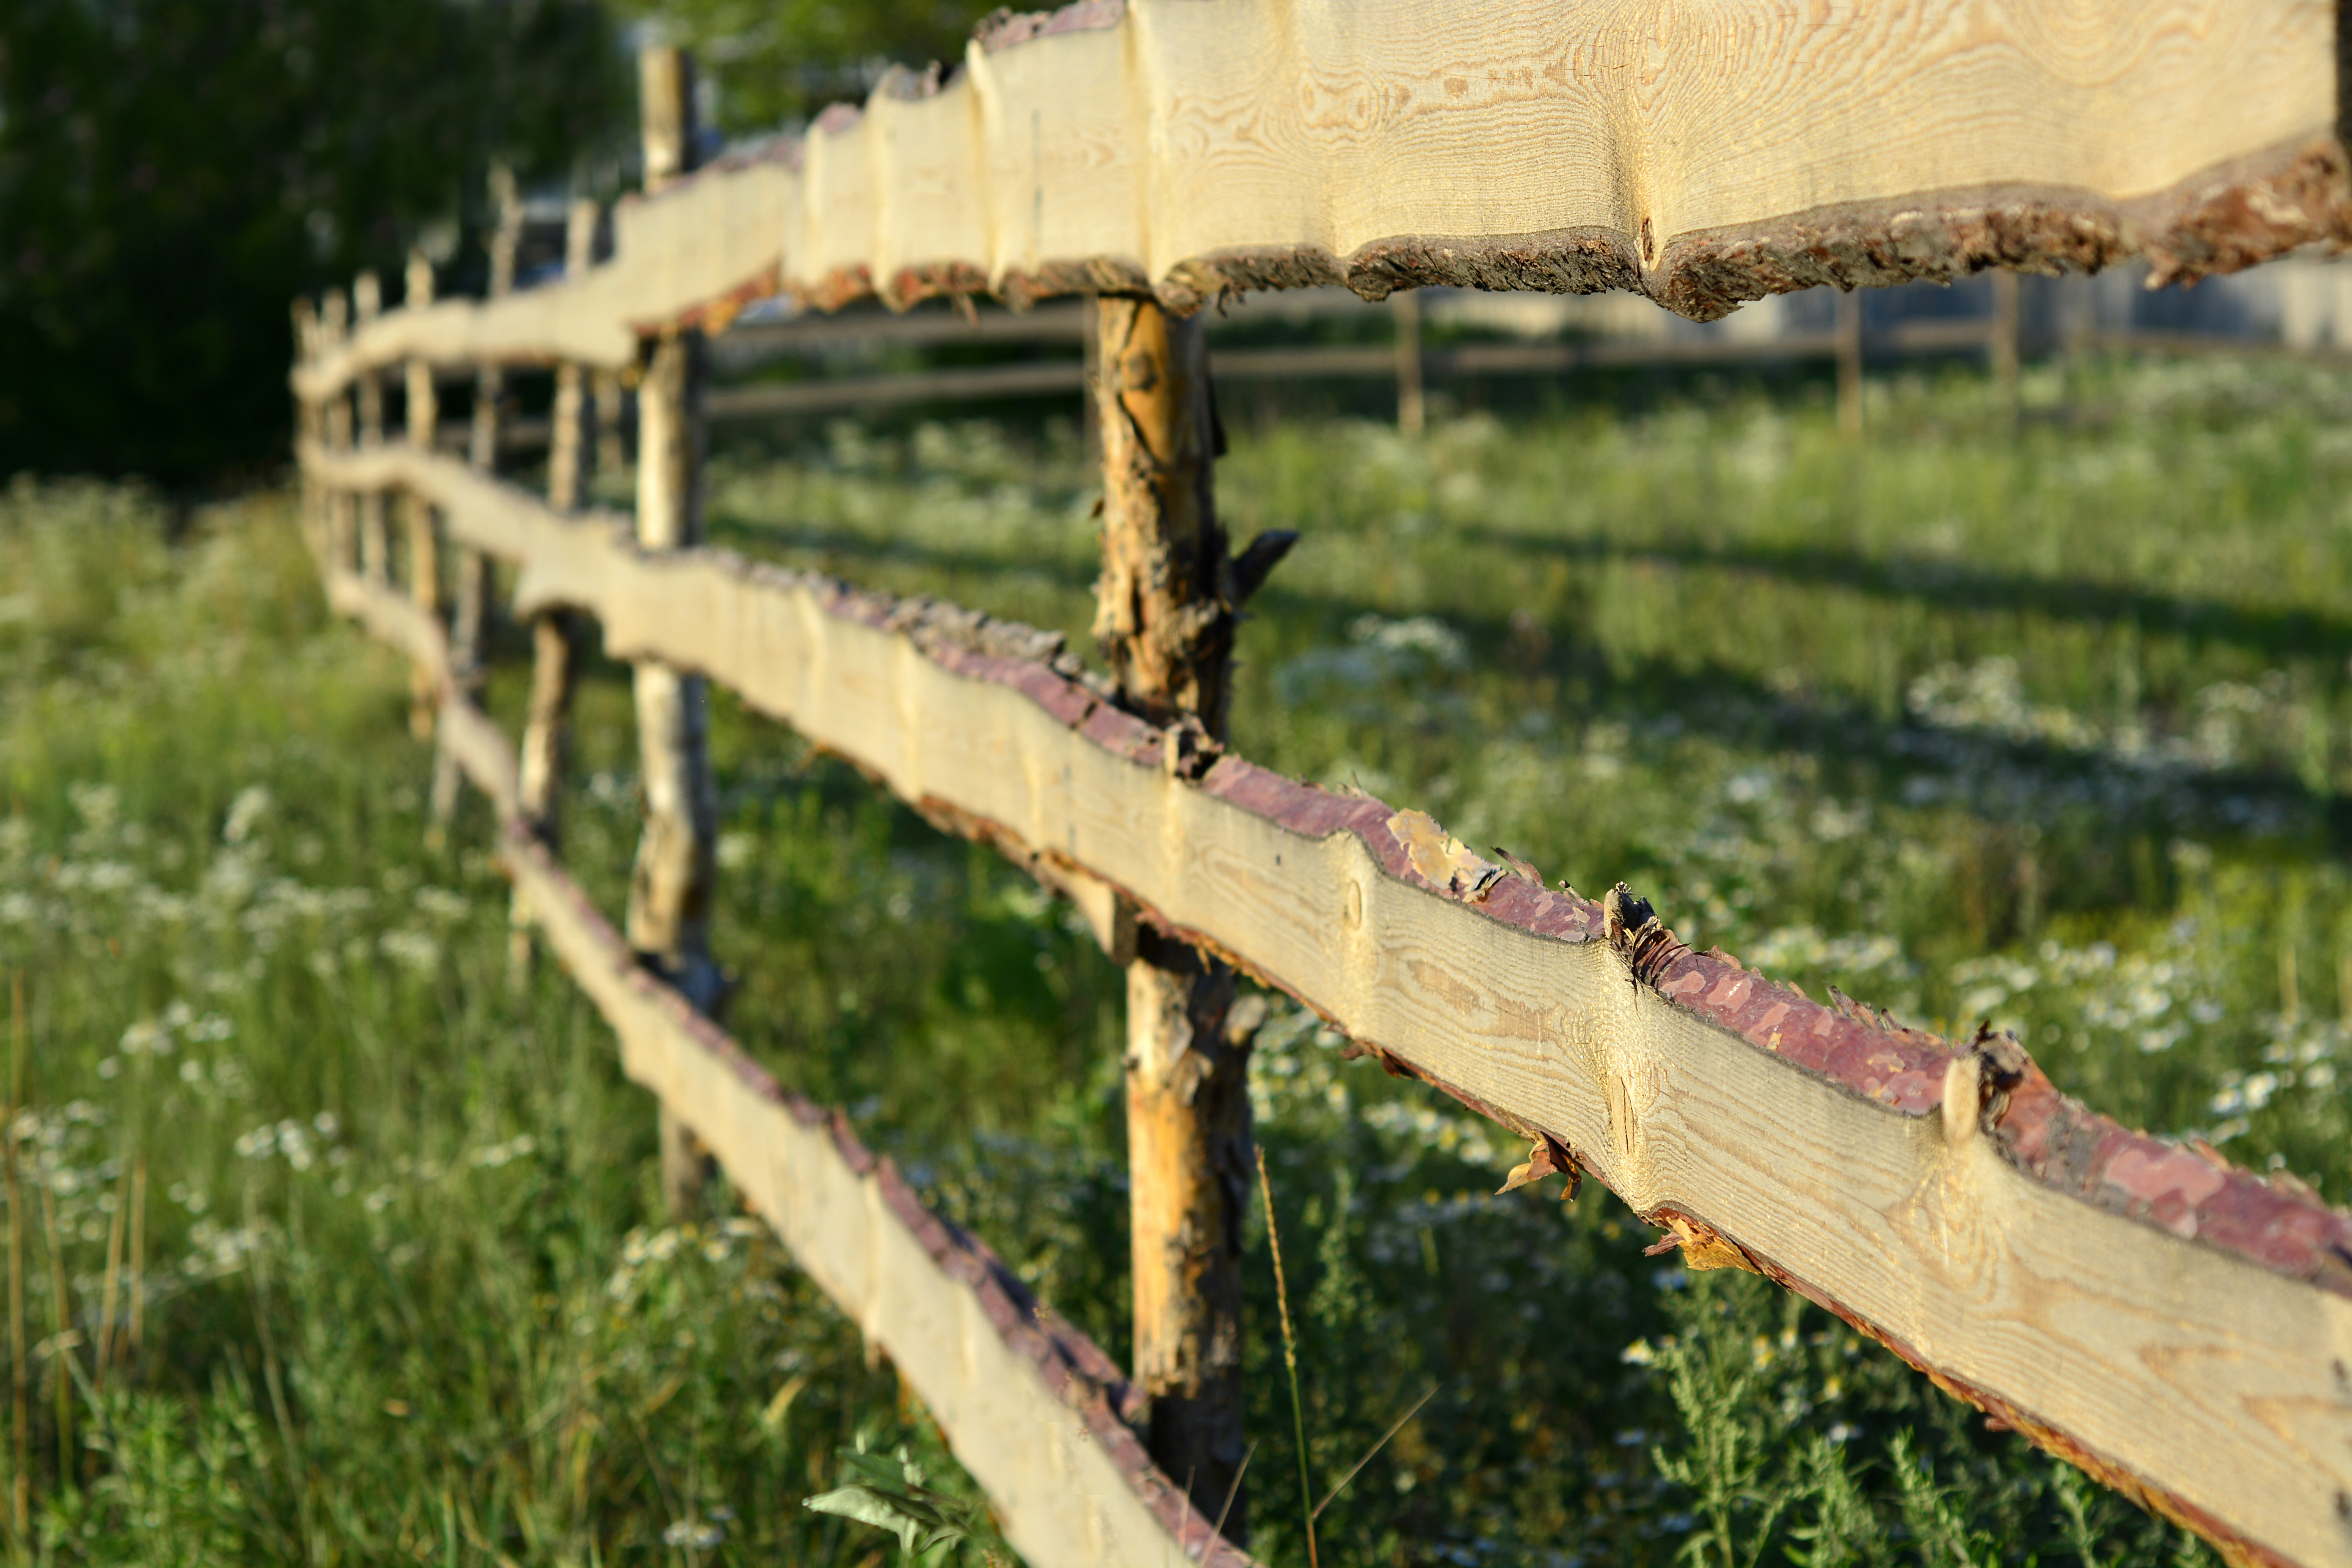 Andrey Medvedev by Shutterstock currency hedging, an old fashioned wooden fence